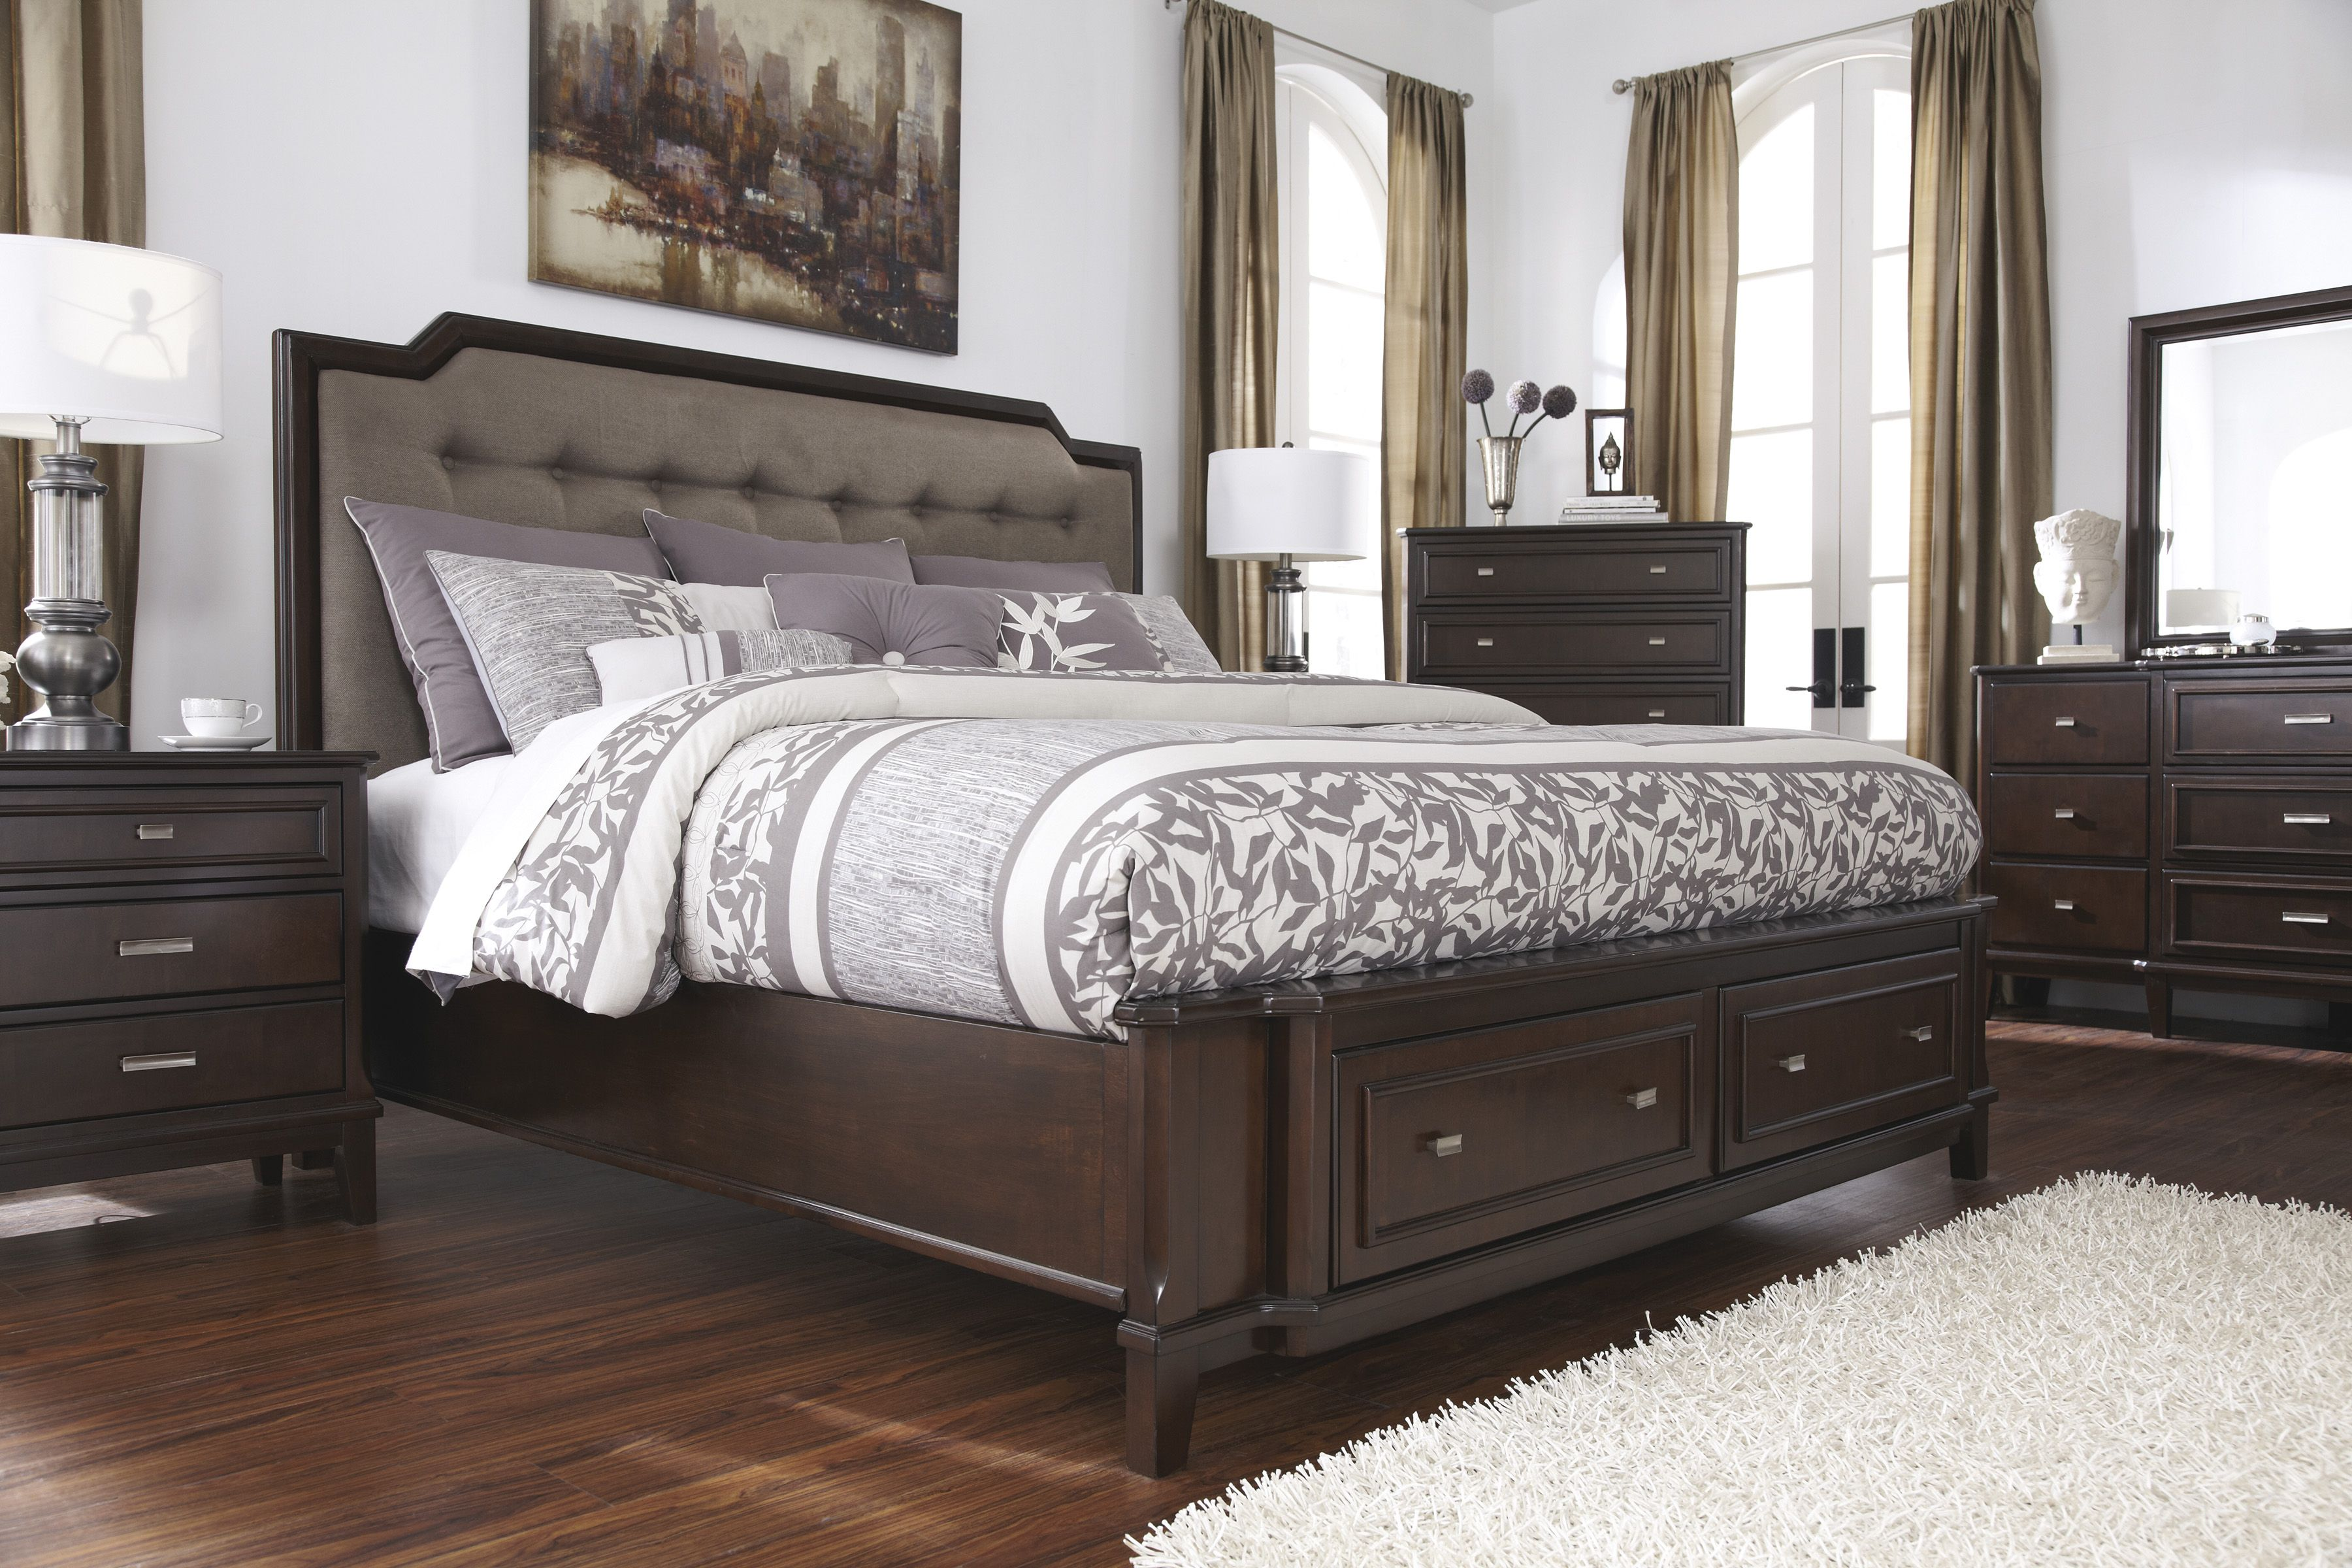 clearance size black frame fabulous bed set suites furniture queen pine amazing king sets headboard design bedroom cal boys sumptuous